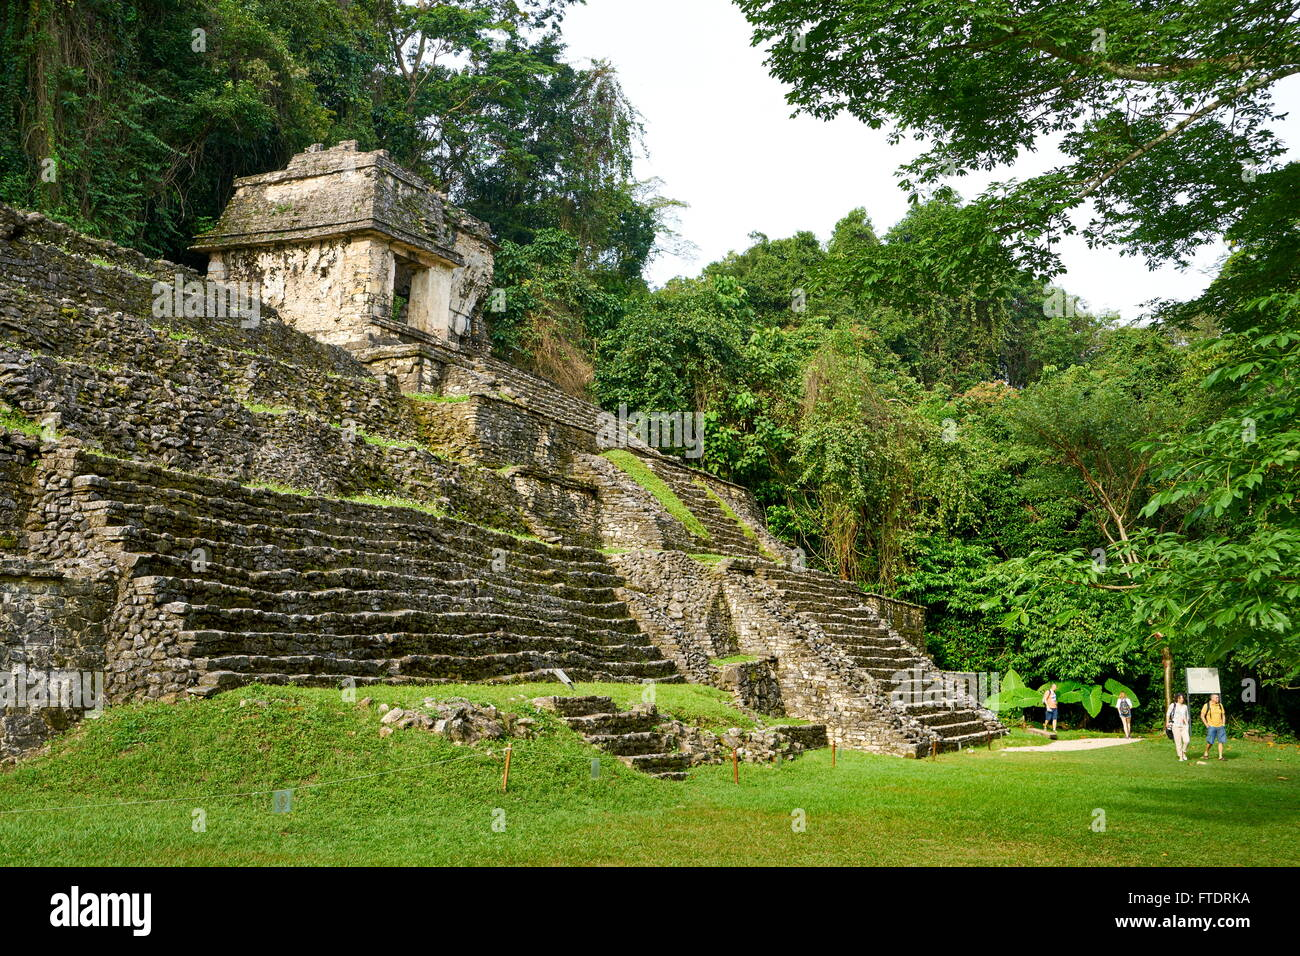 Temple of the Skull, Ancient Maya Ruins, Palenque, Mexico - Stock Image